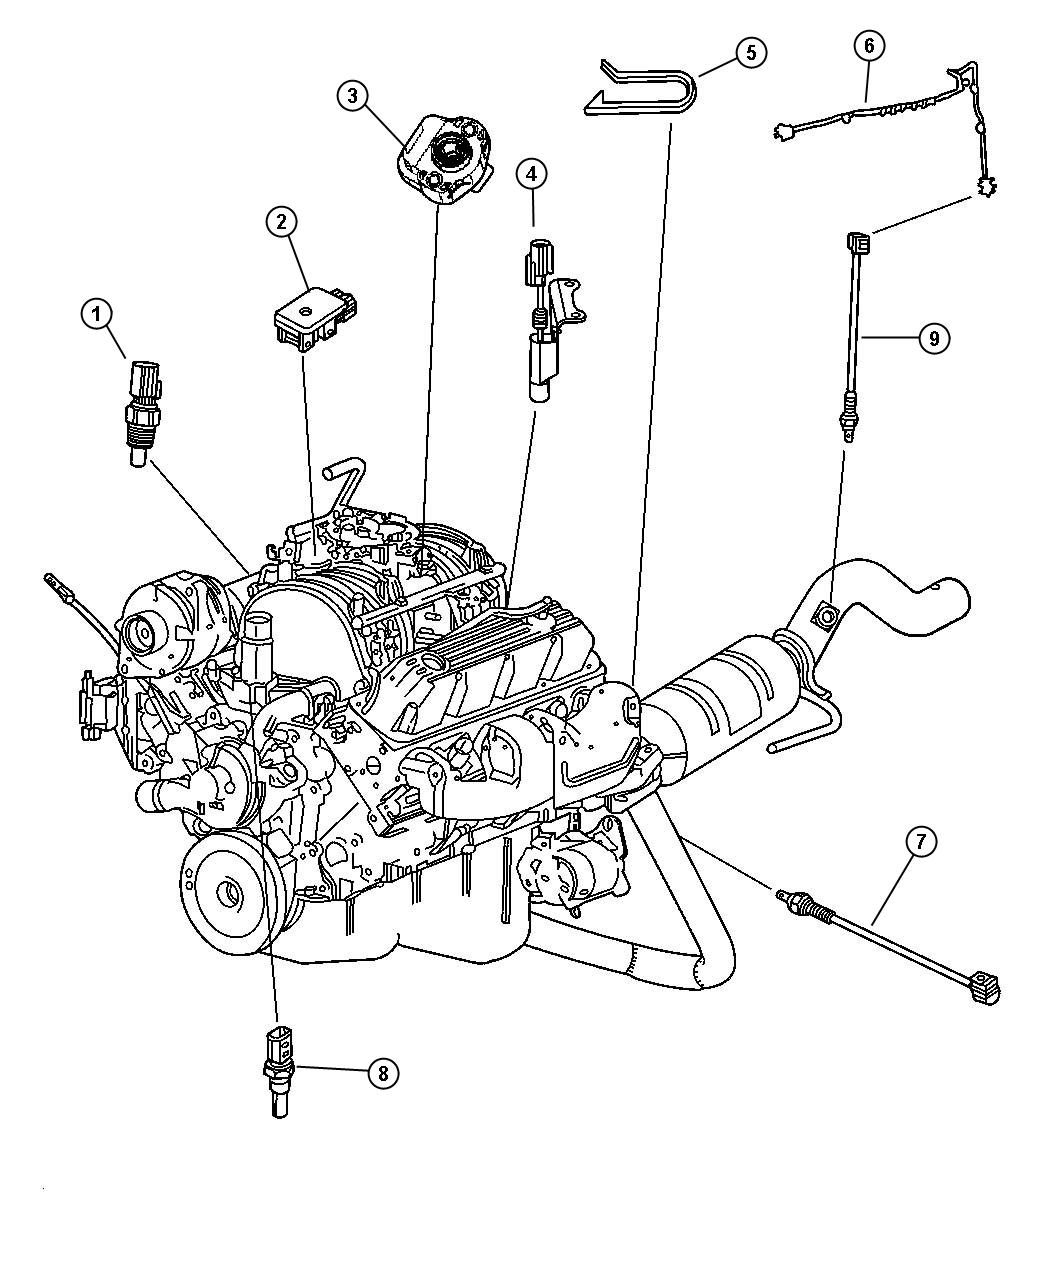 integra engine harness diagram